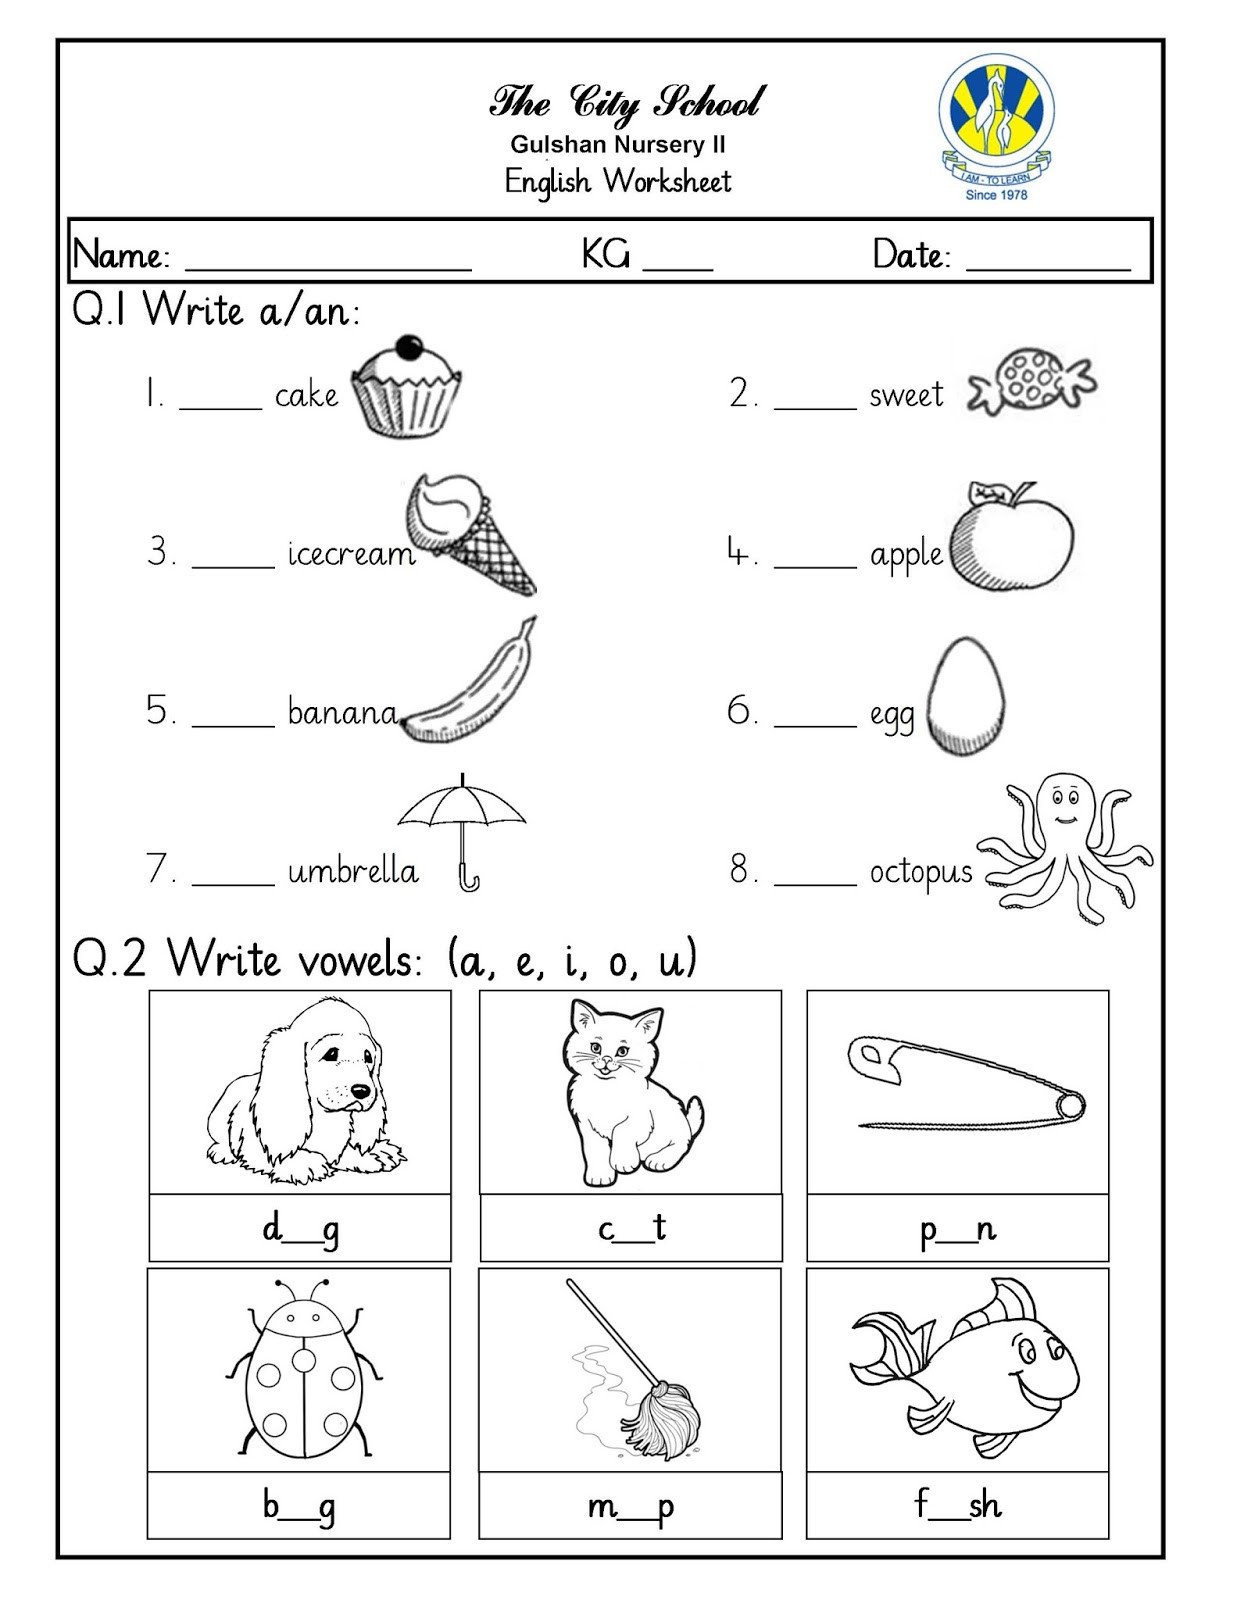 3rd Grade Sight Words Worksheets Worksheet Classroom Worksheets Printable Kidzone English